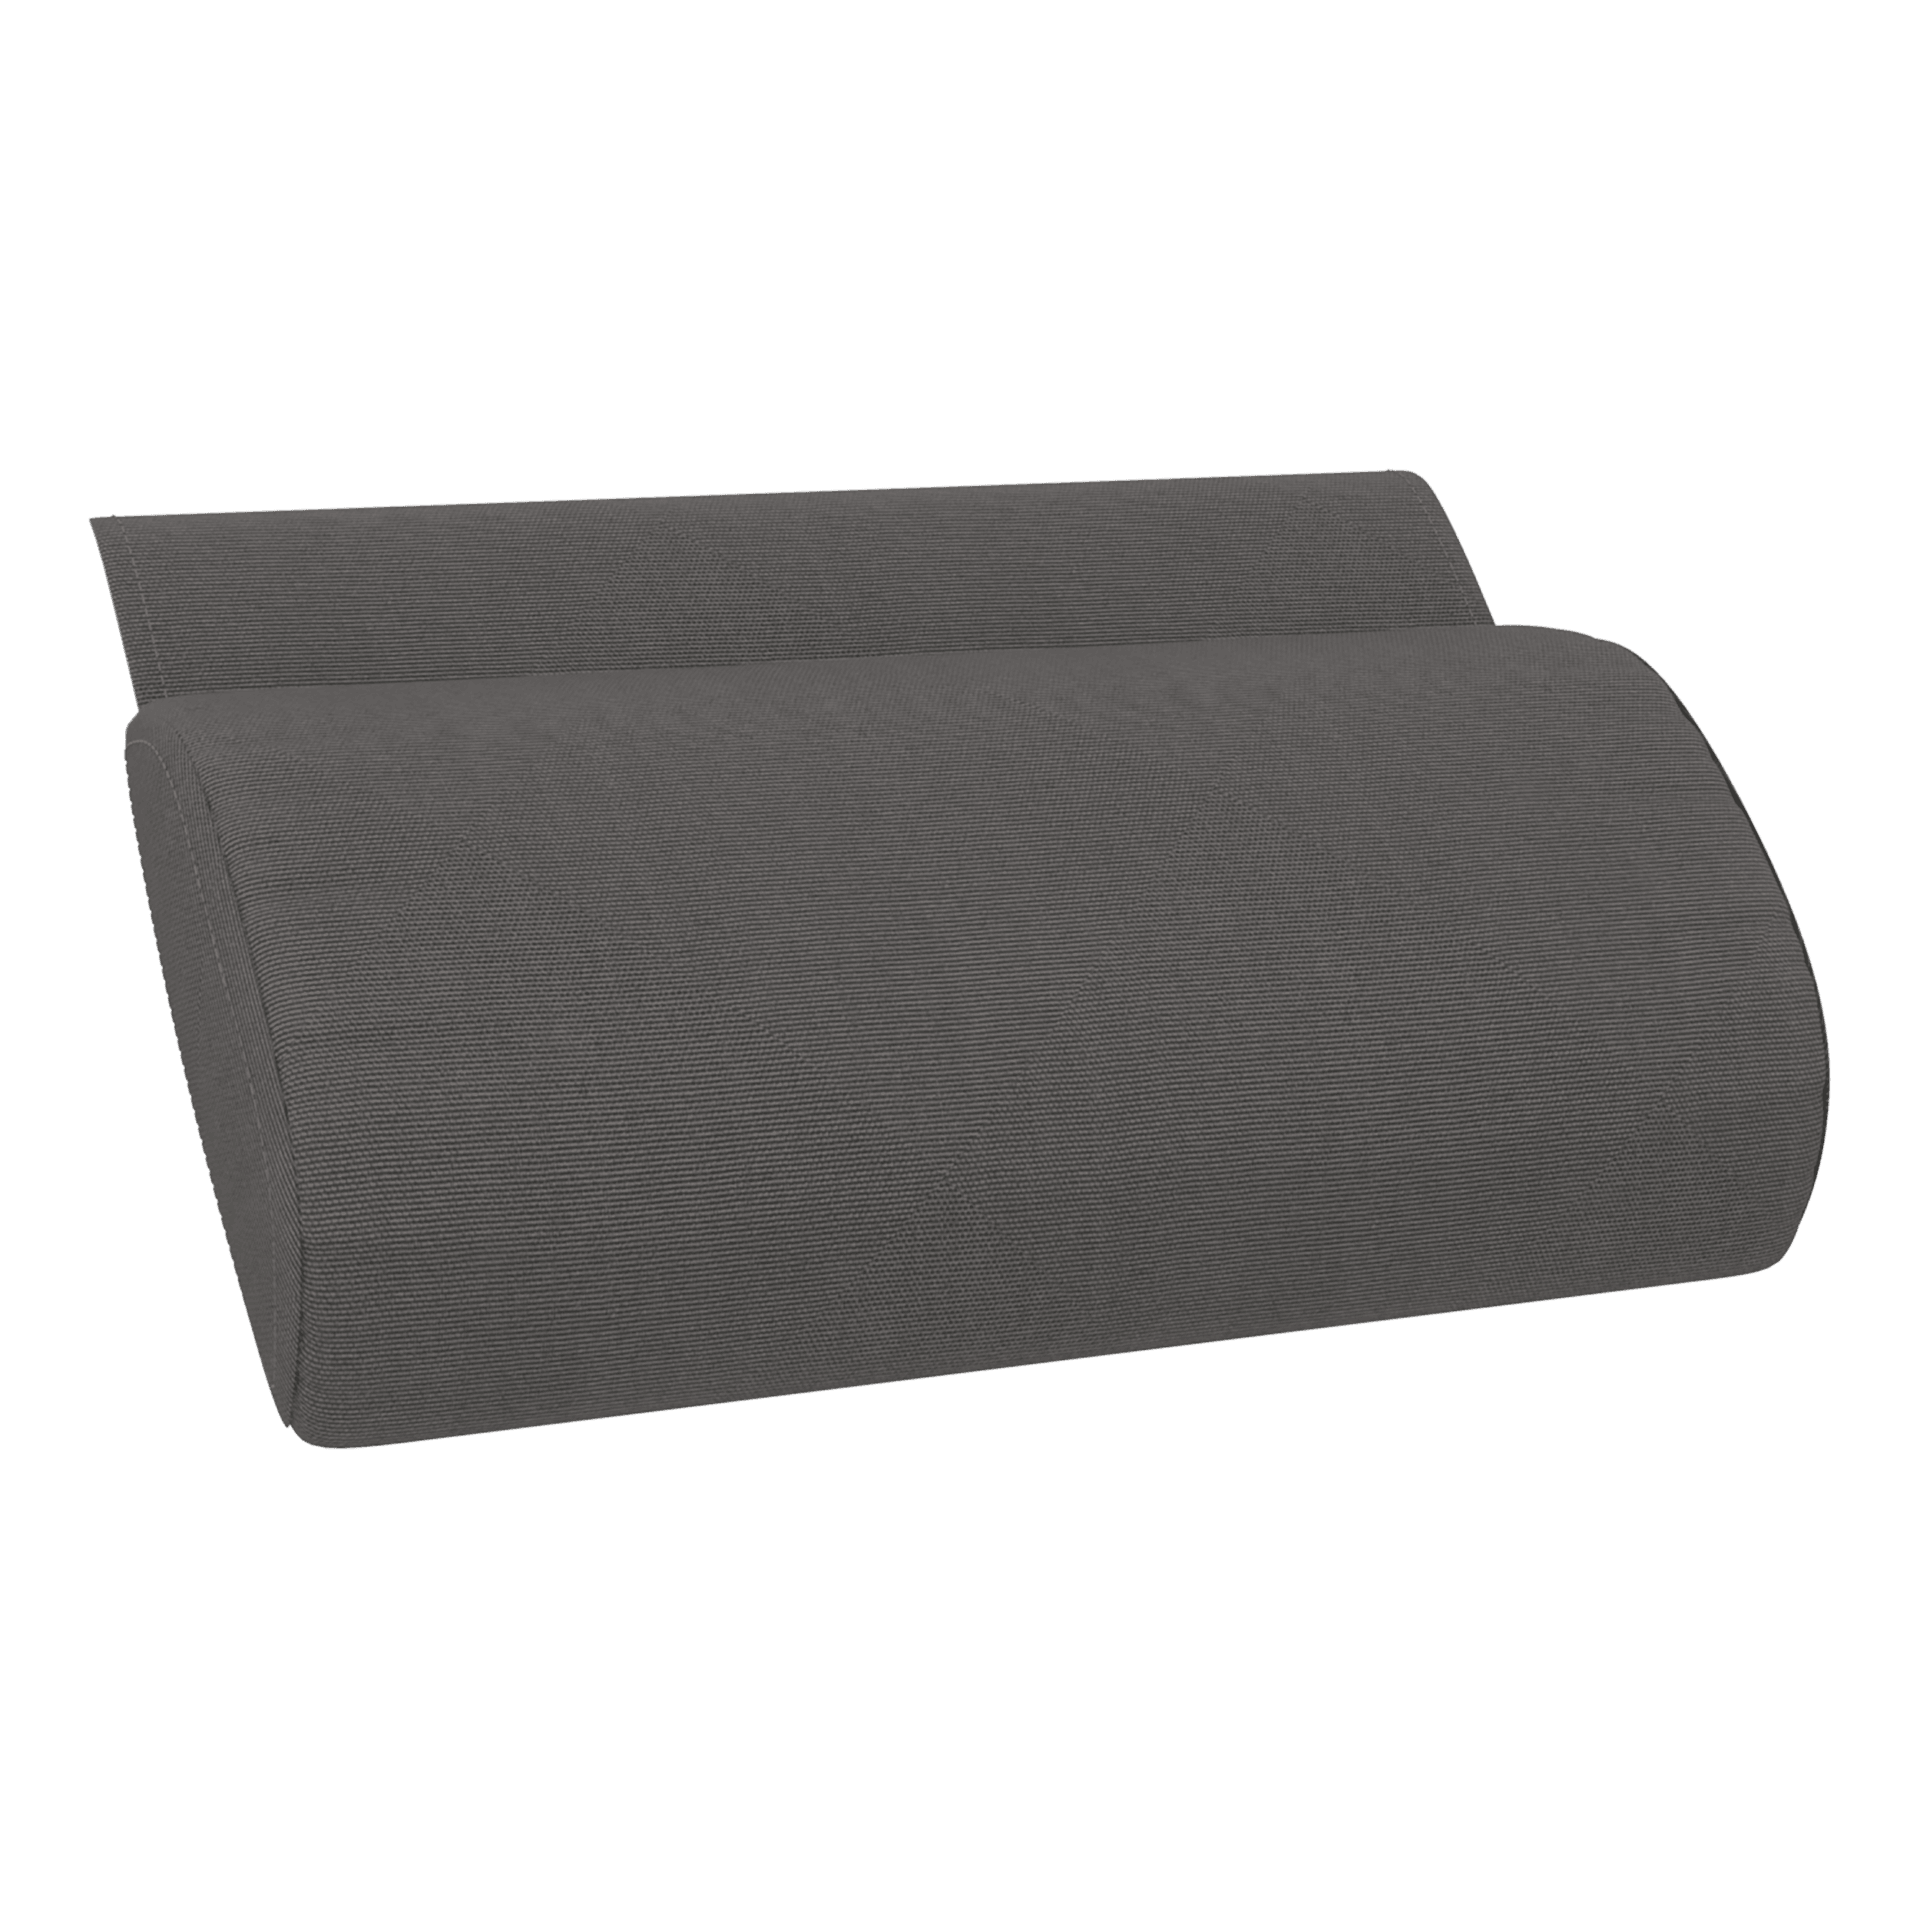 Cushion Pillow Anthracite - (Slim Sunlounger)